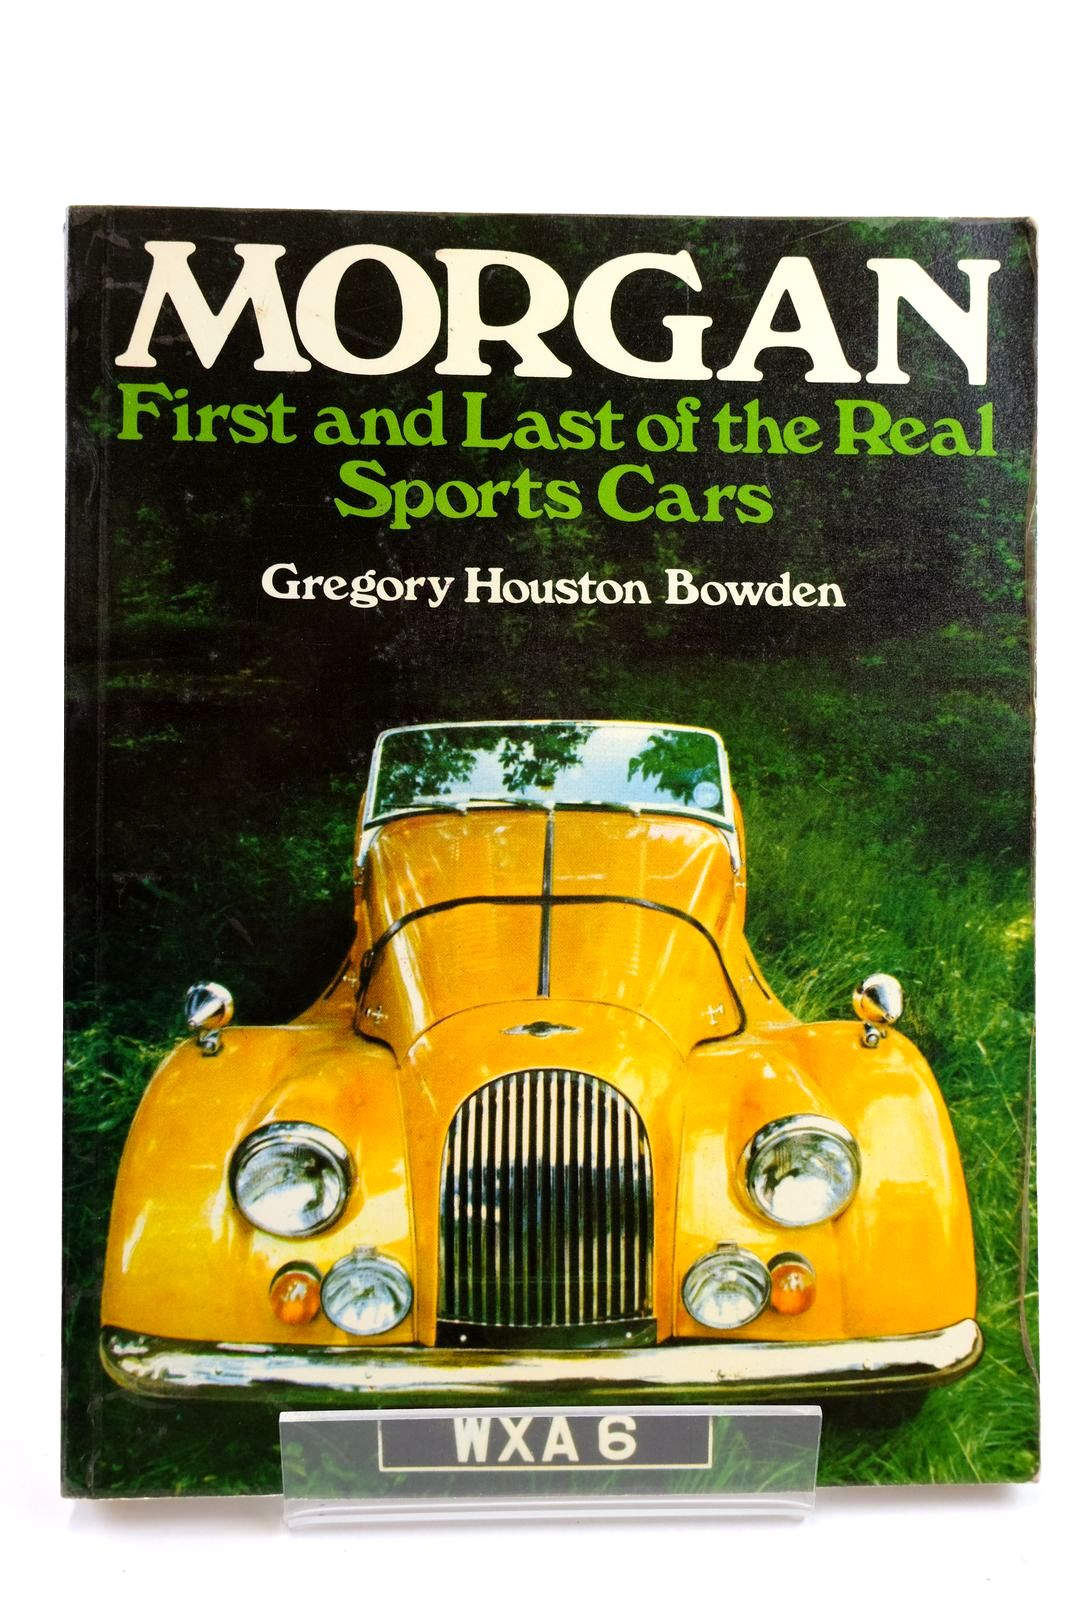 Photo of MORGAN FIRST AND LAST OF THE REAL SPORTS CARS written by Bowden, Gregory Houston published by Galleon (STOCK CODE: 2132232)  for sale by Stella & Rose's Books